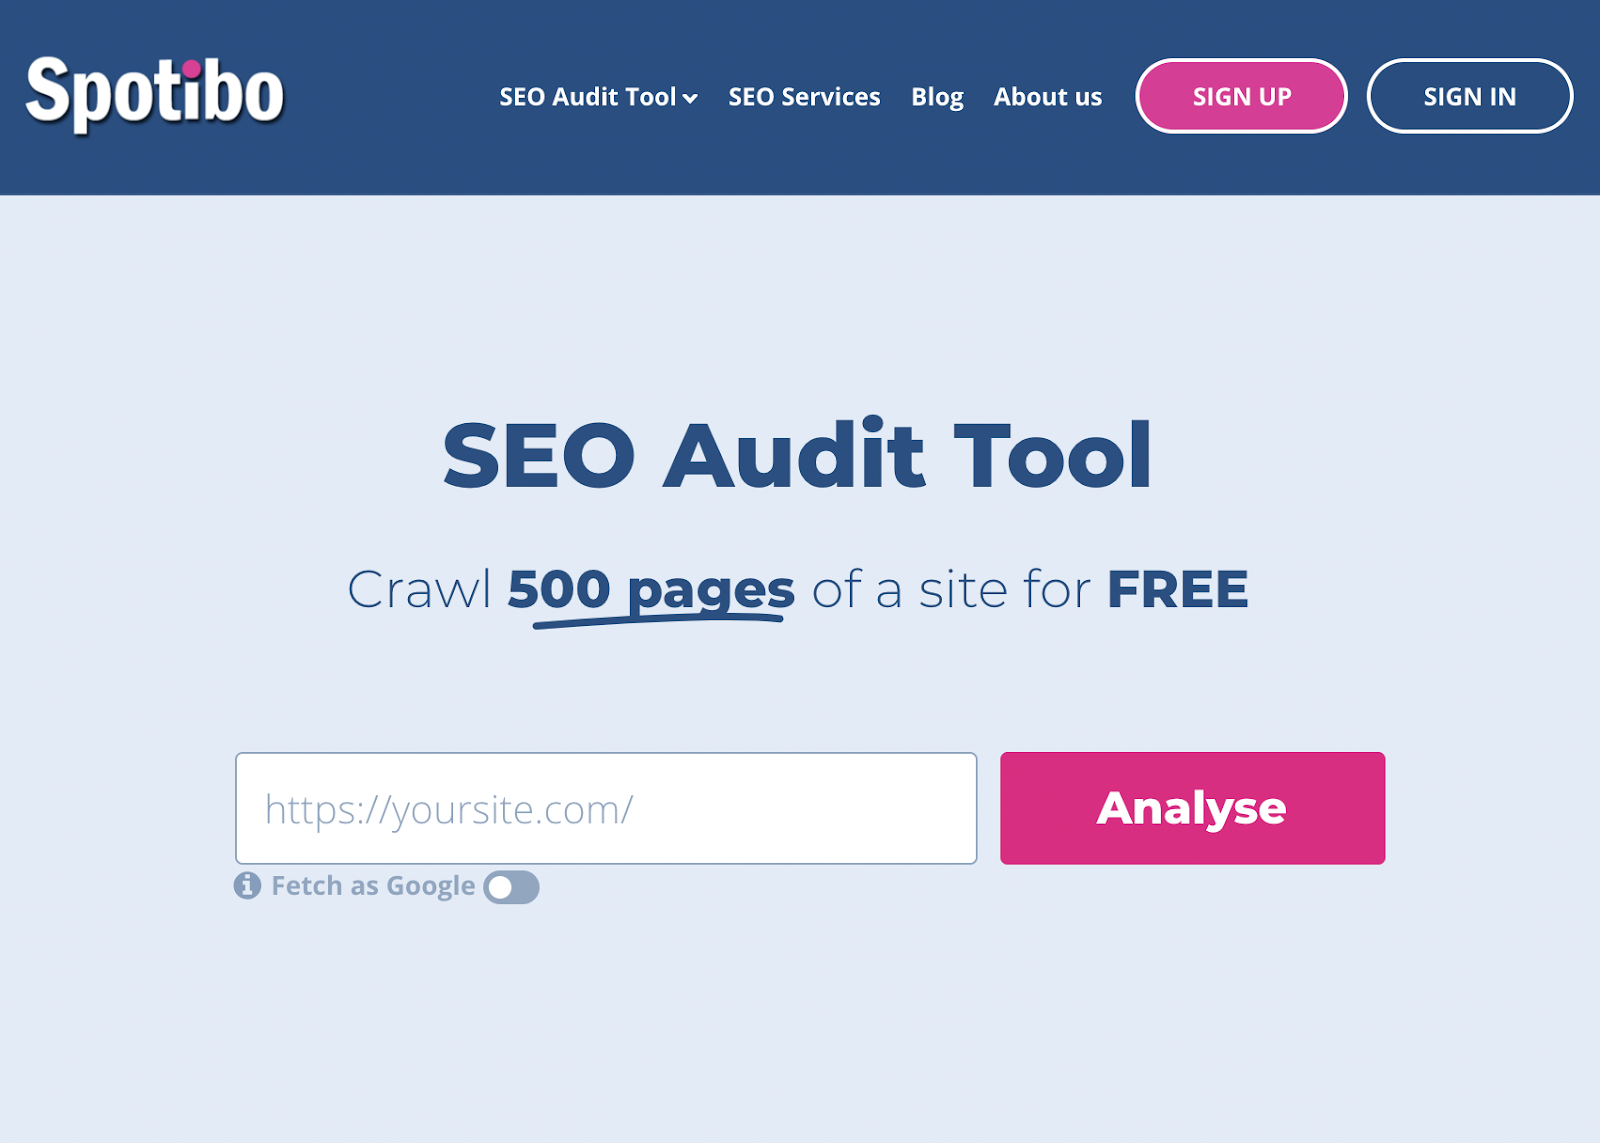 Spotibo is an SEO audit tool that crawls 500 page for free